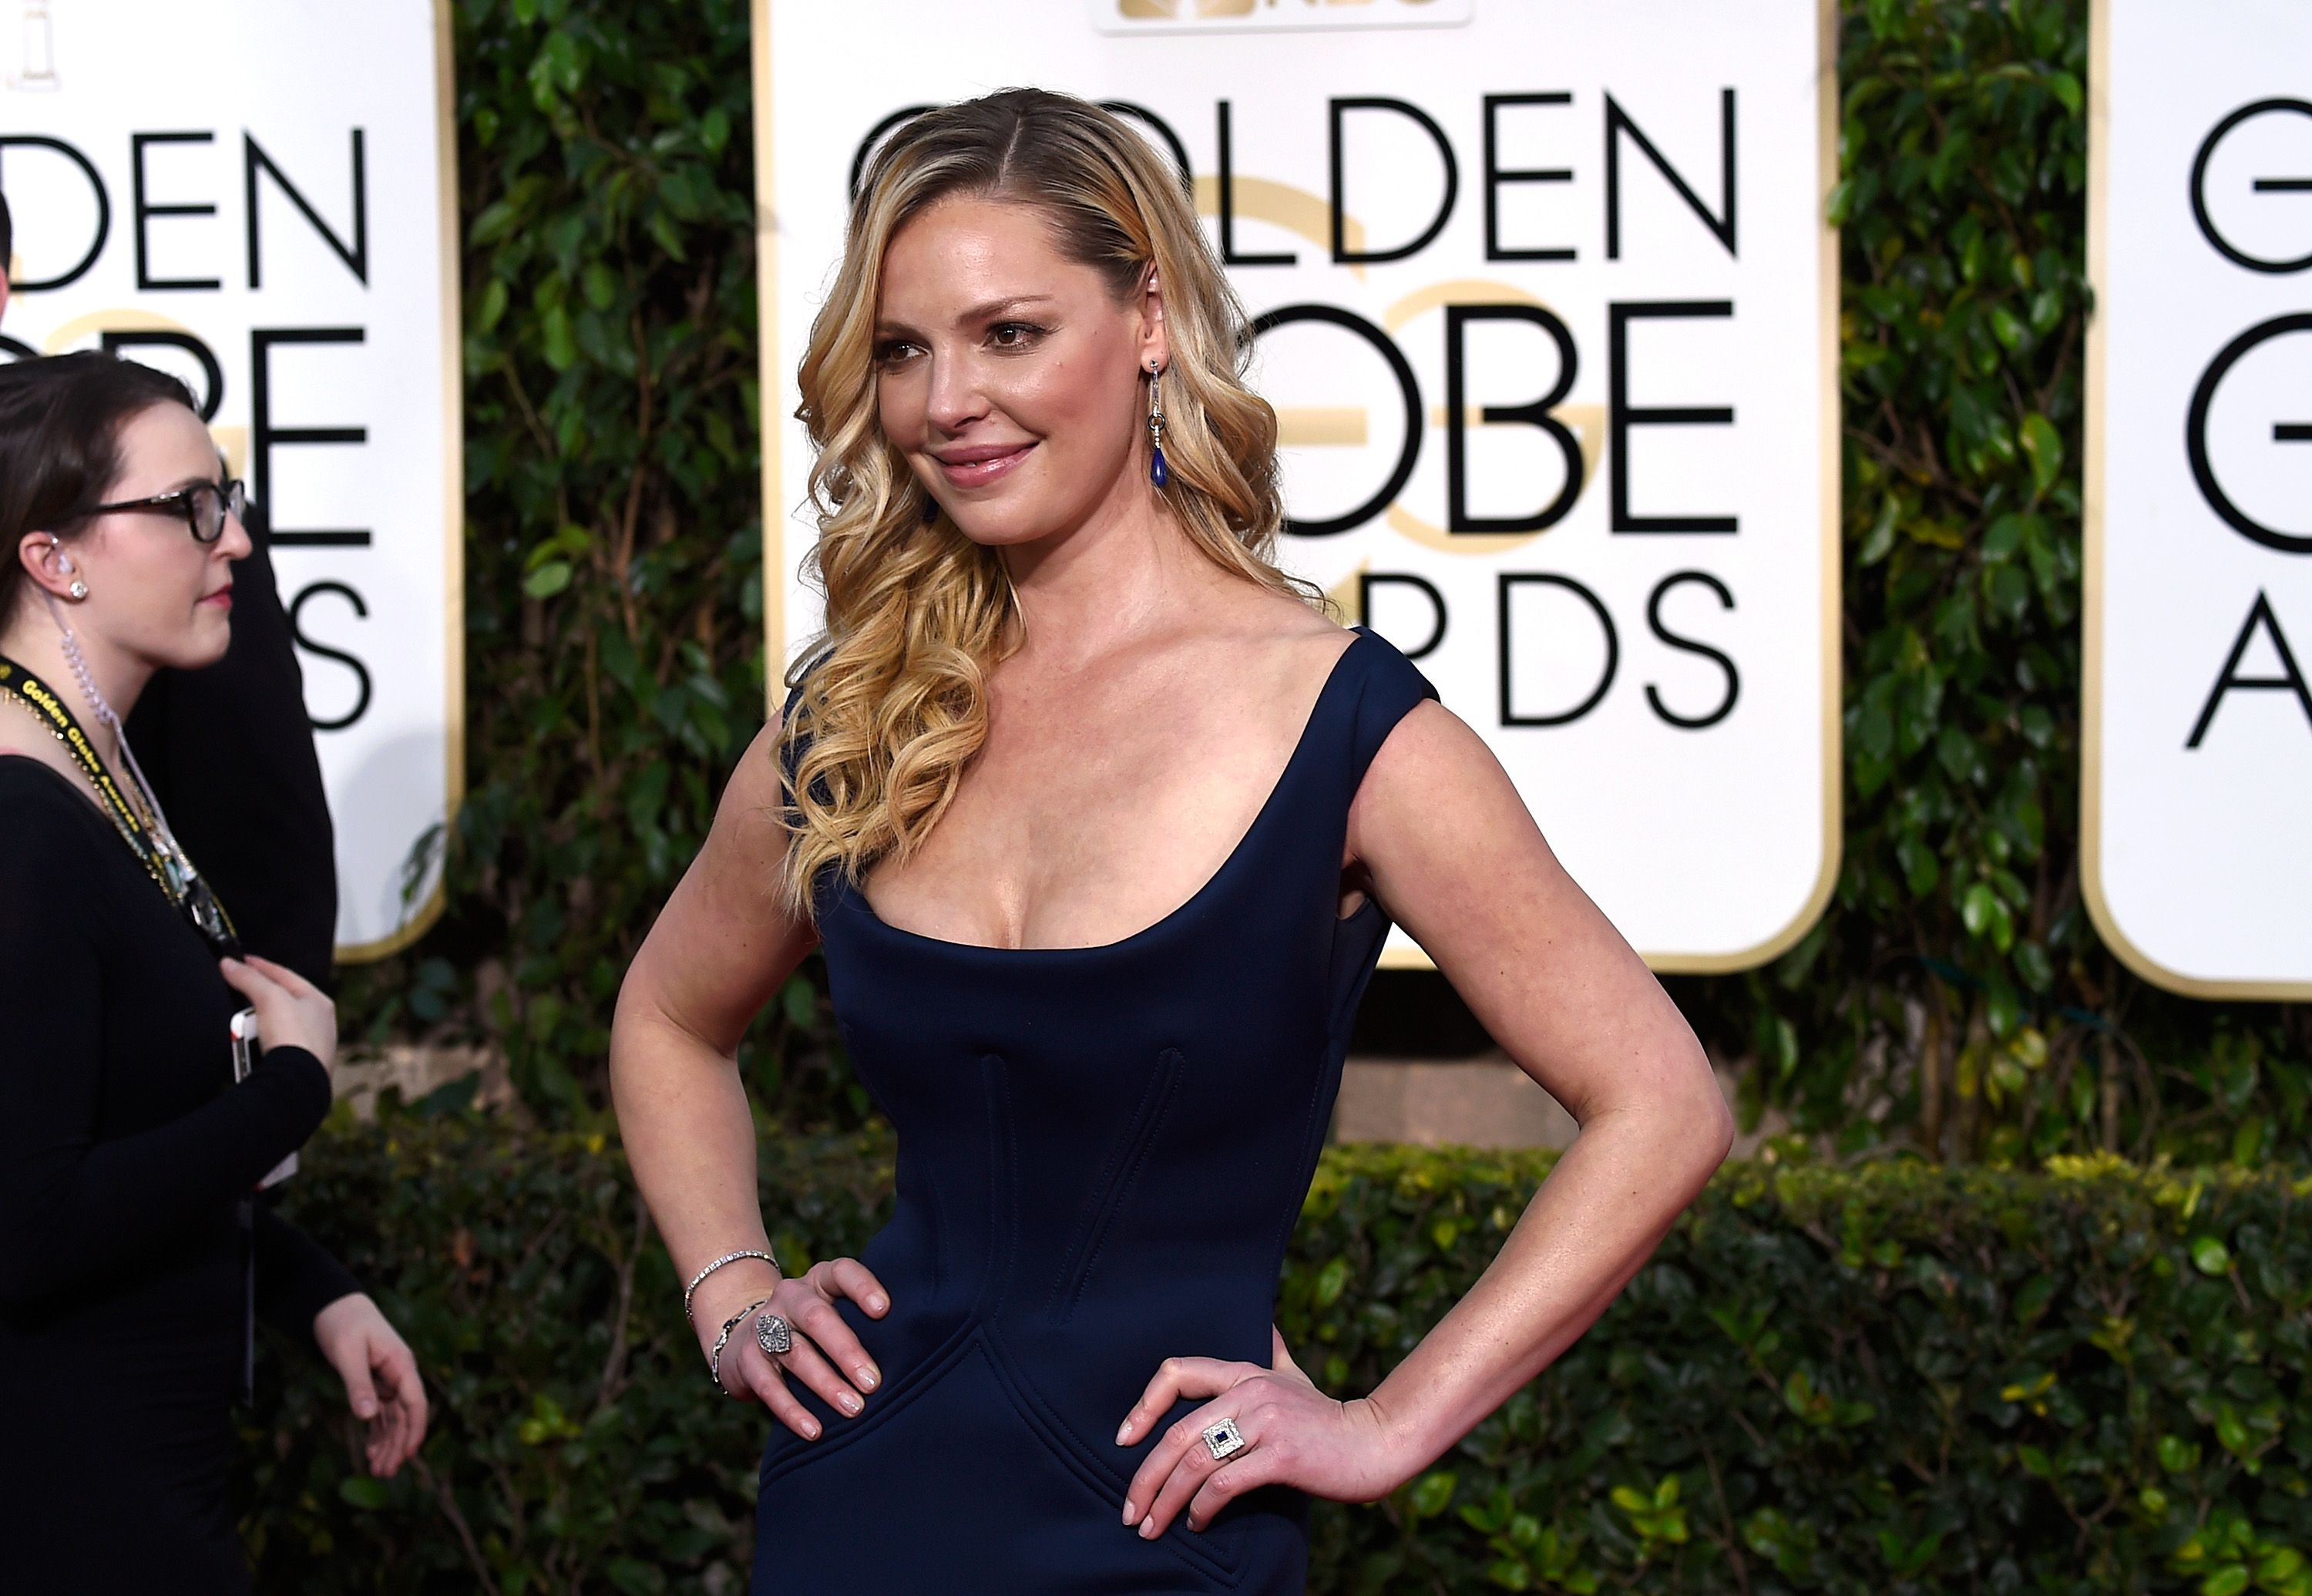 Katherine Heigl at the 72nd Annual Golden Globe Awards in 2015 in Beverly Hills, California | Source: Getty Images